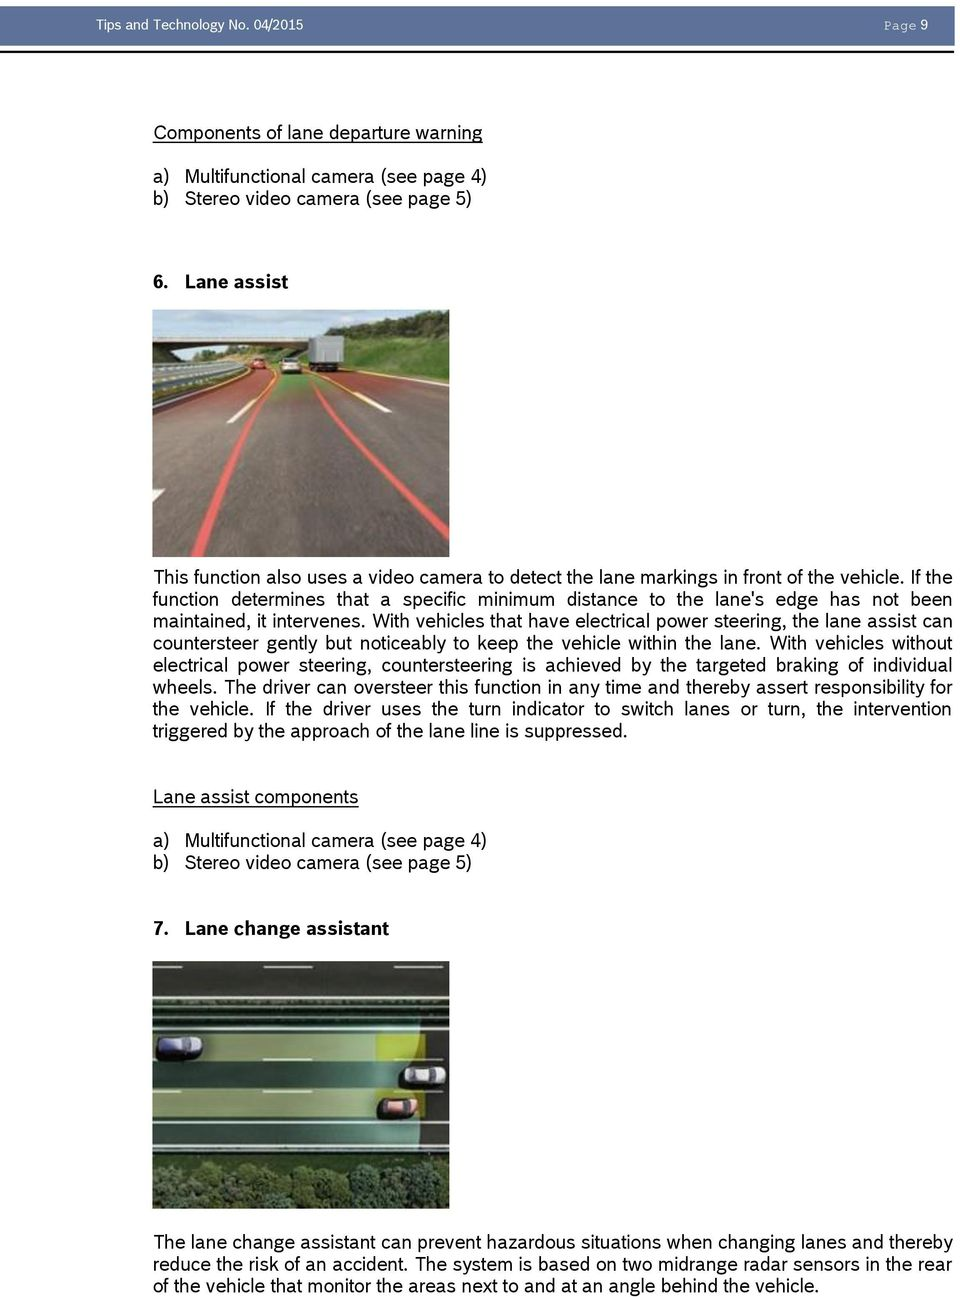 If the function determines that a specific minimum distance to the lane's edge has not been maintained, it intervenes.